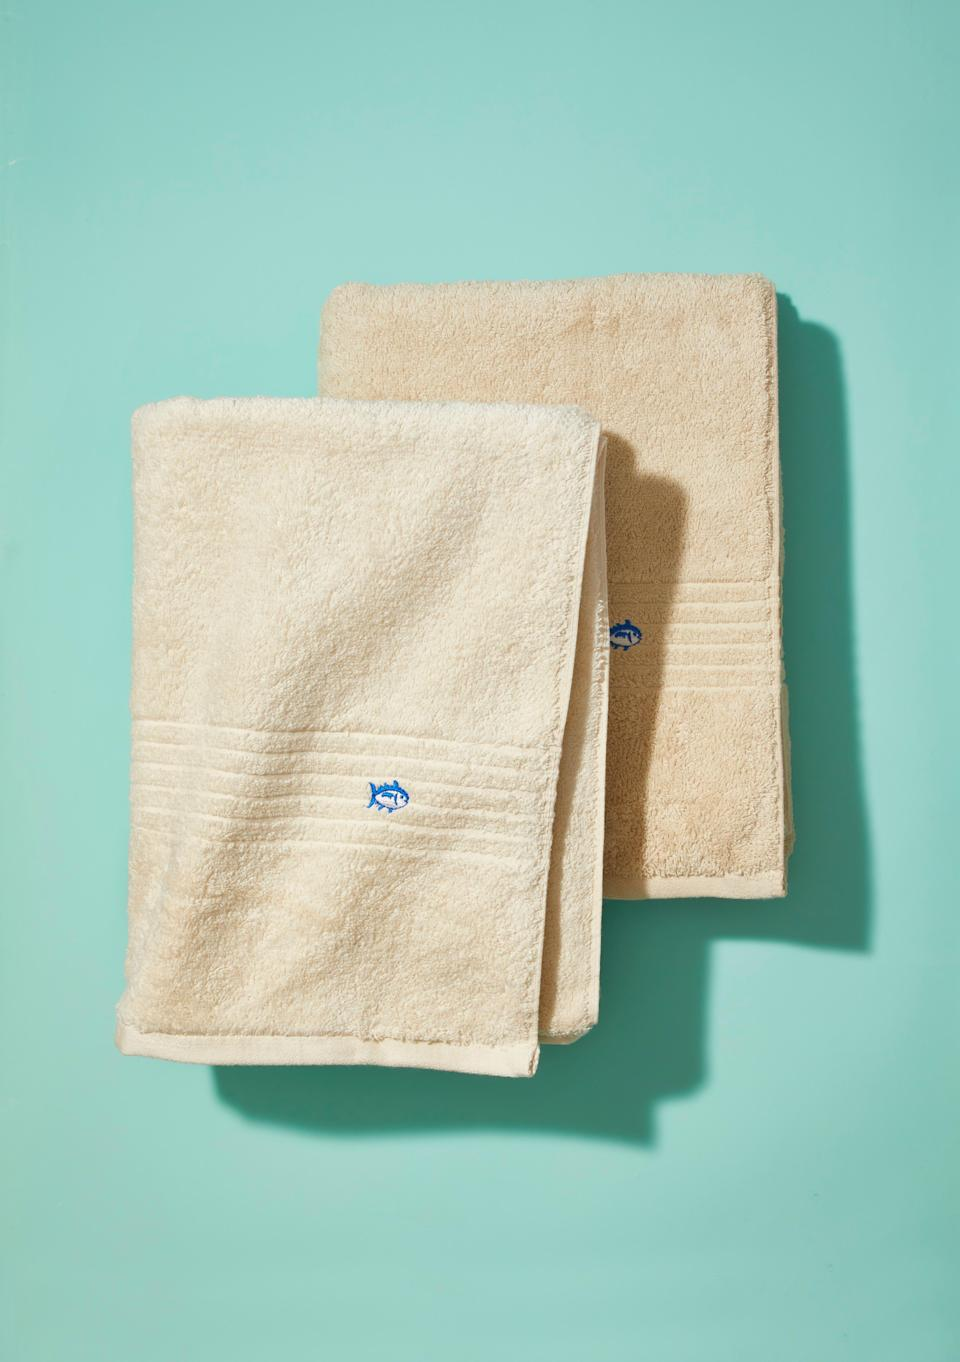 """<p><strong>Southern Tide</strong></p><p>amazon.com</p><p><strong>$16.99</strong></p><p><a href=""""http://www.amazon.com/dp/B07D8JJXD7/?tag=syn-yahoo-20&ascsubtag=%5Bartid%7C10055.g.27332121%5Bsrc%7Cyahoo-us"""" rel=""""nofollow noopener"""" target=""""_blank"""" data-ylk=""""slk:Shop Now"""" class=""""link rapid-noclick-resp"""">Shop Now</a></p><p>These super-affordable towels received strong scores from the GHI for absorbency, drying speed, softness and fabric strength. And at this price, you can buy a ton of them and procrastinate on doing laundry. </p>"""